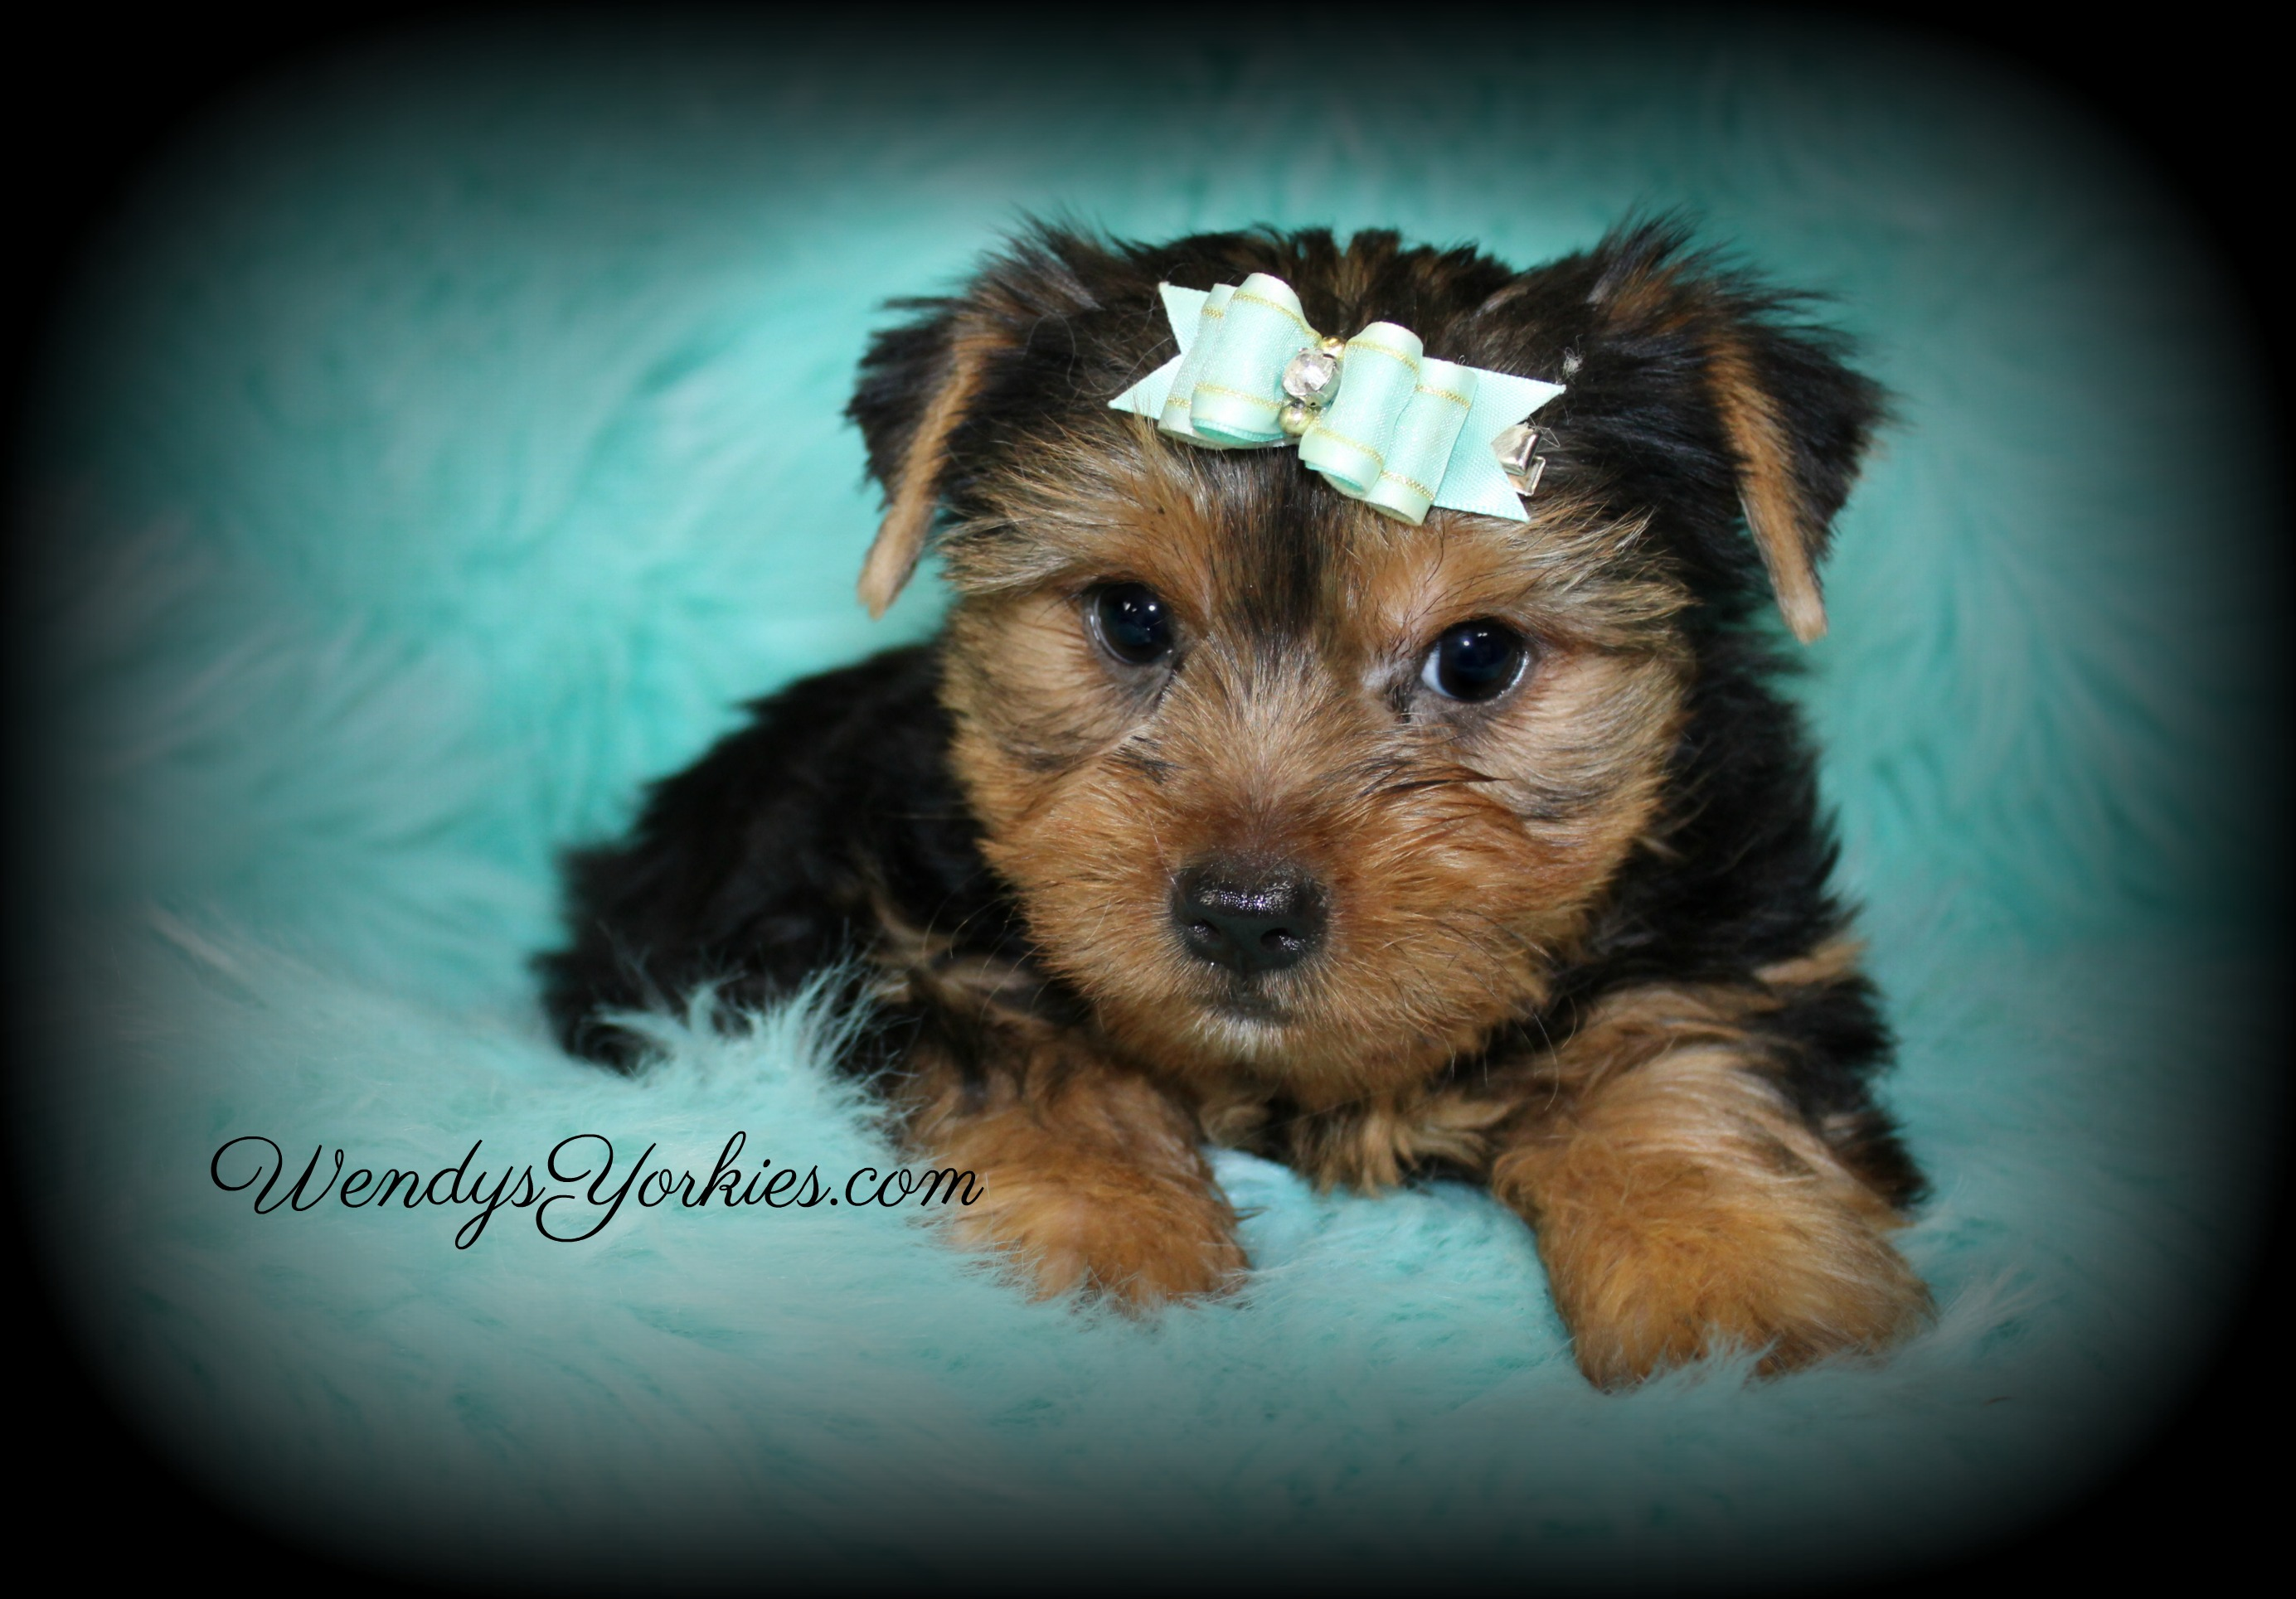 Cute Male Yorkie puppy for sale, Grace m1, WendysYorkies.com